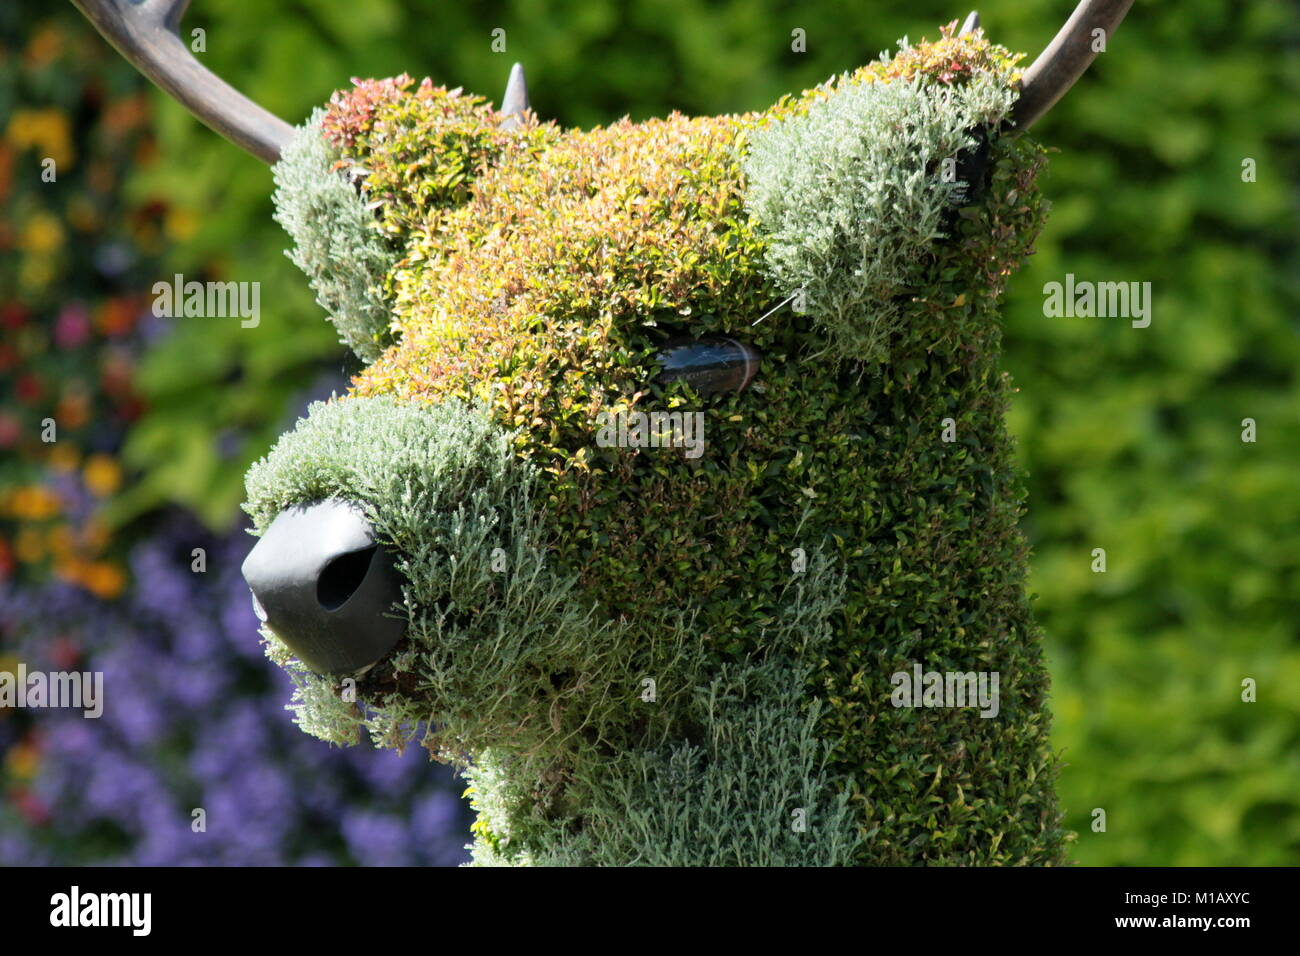 Giant Topiary created for Canada 150 celebrations. - Stock Image